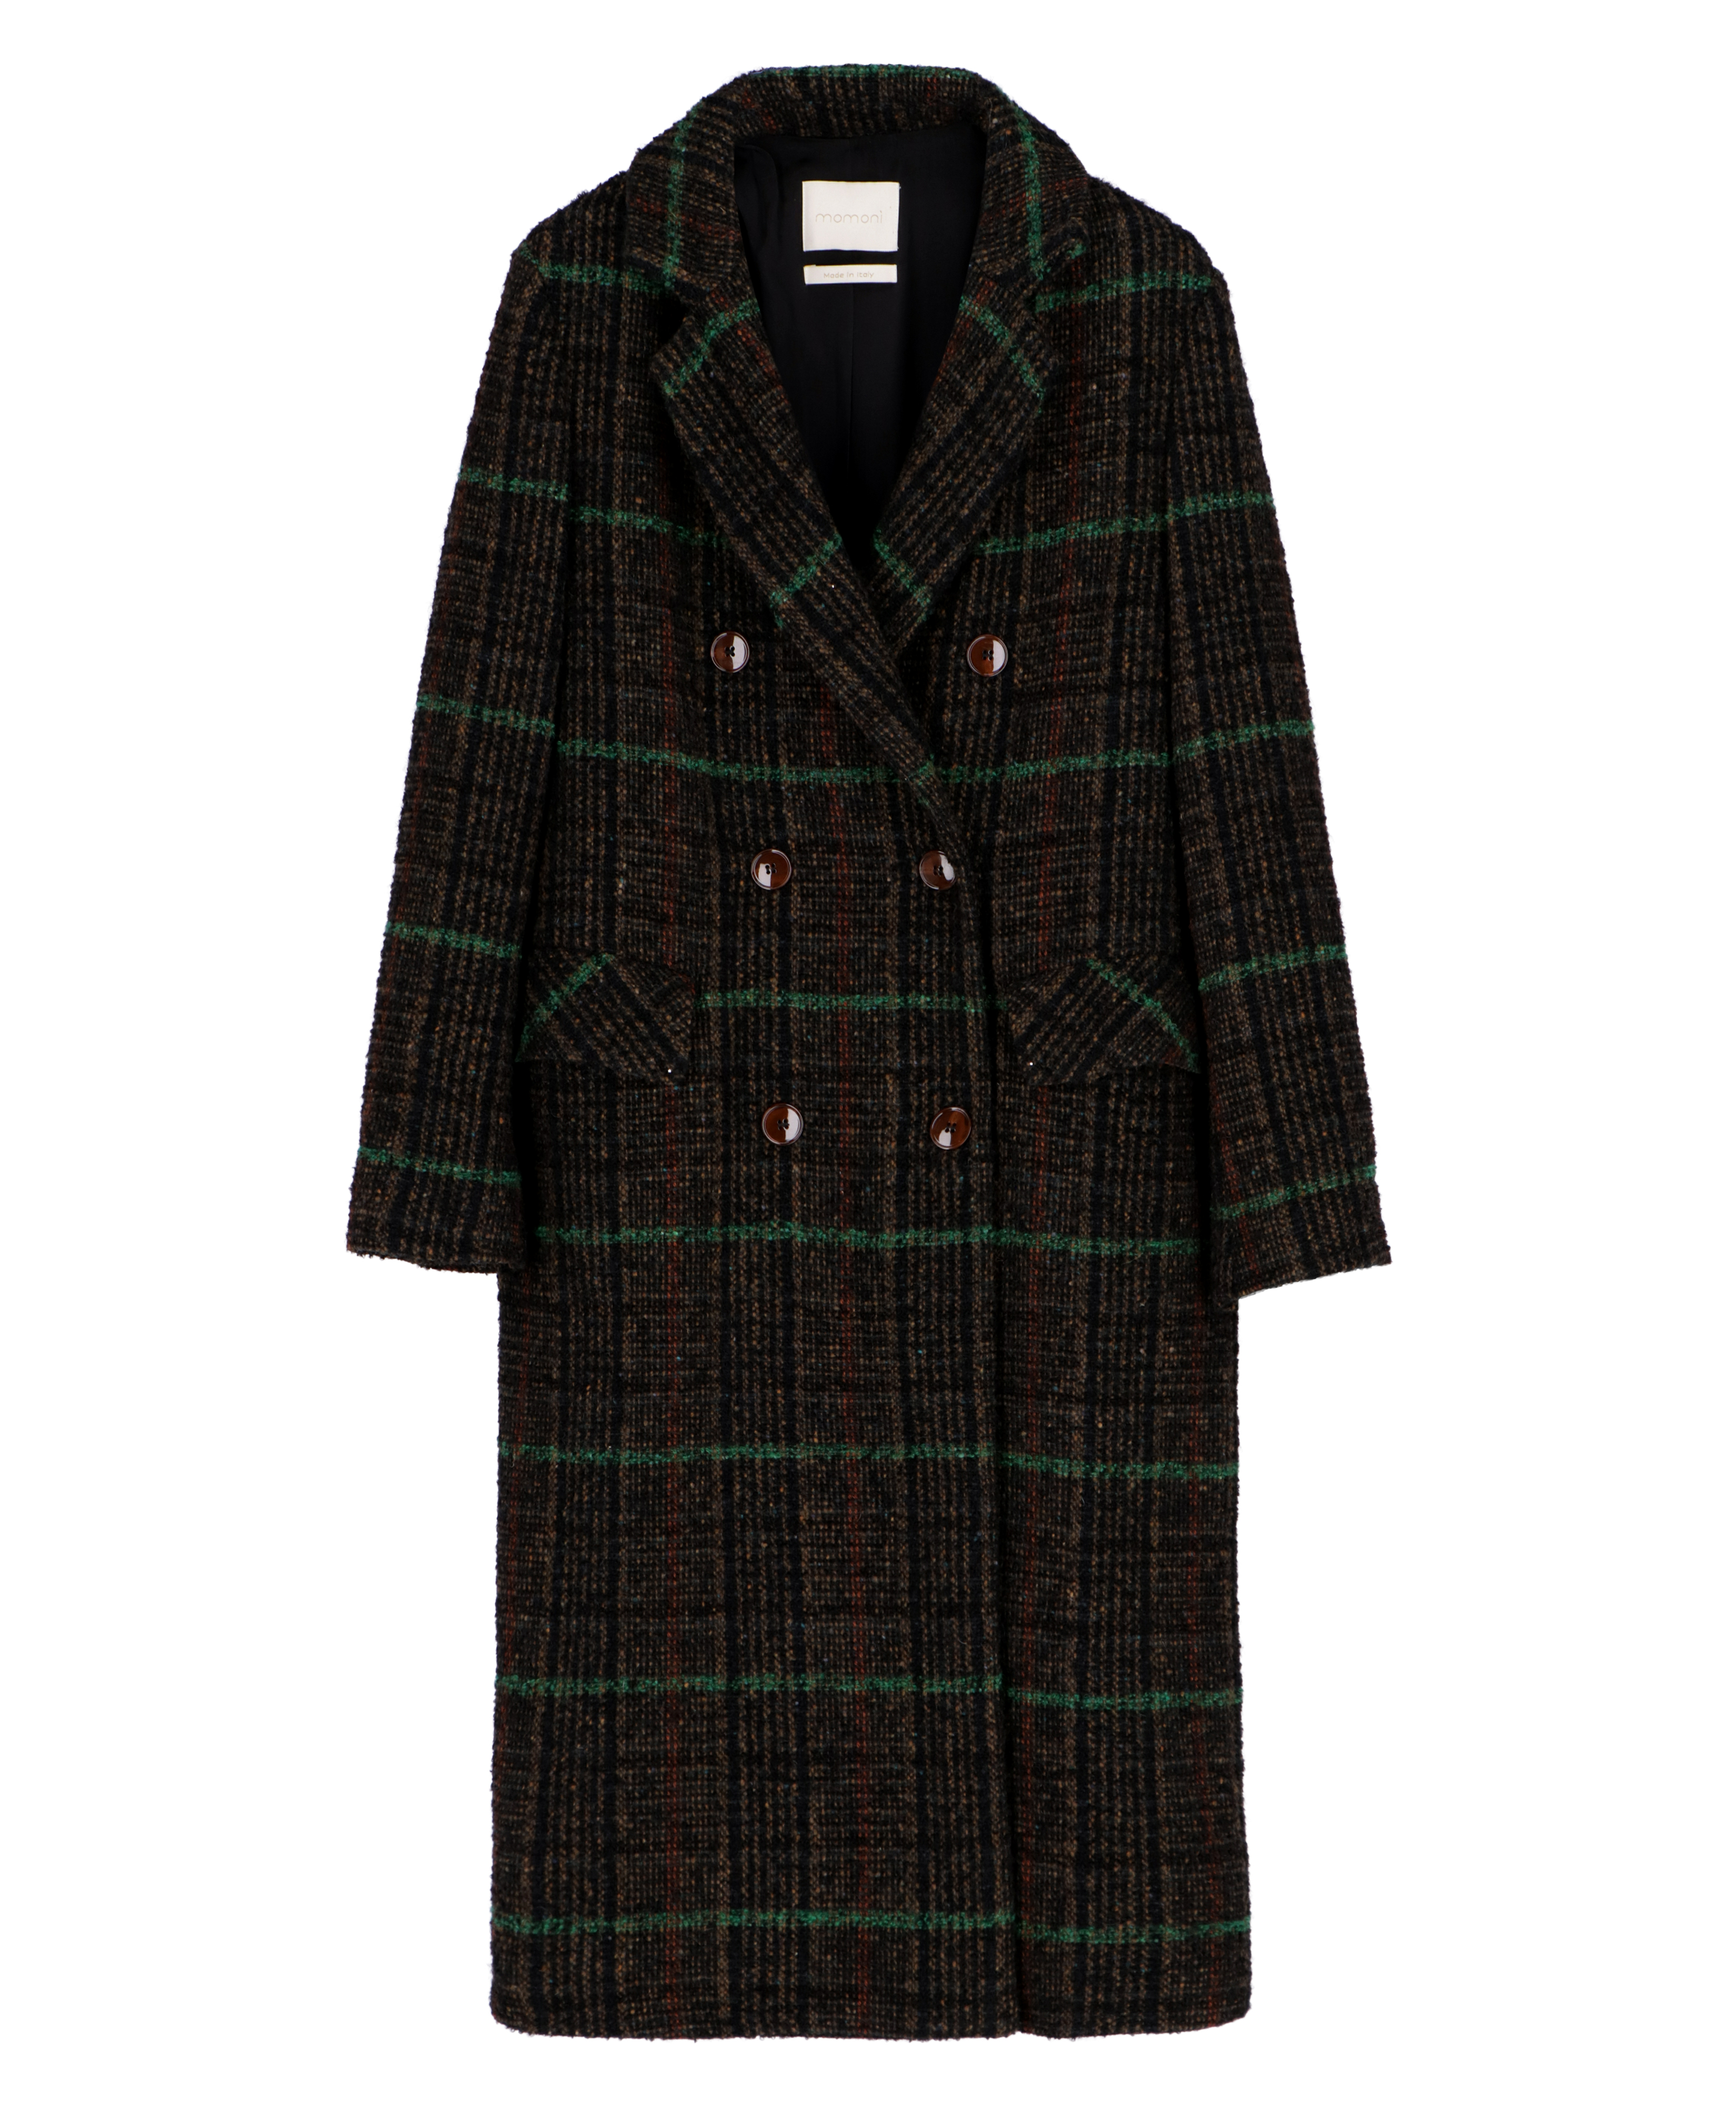 Opale Check wool coat MOMONI | Coat | MOCO0107091